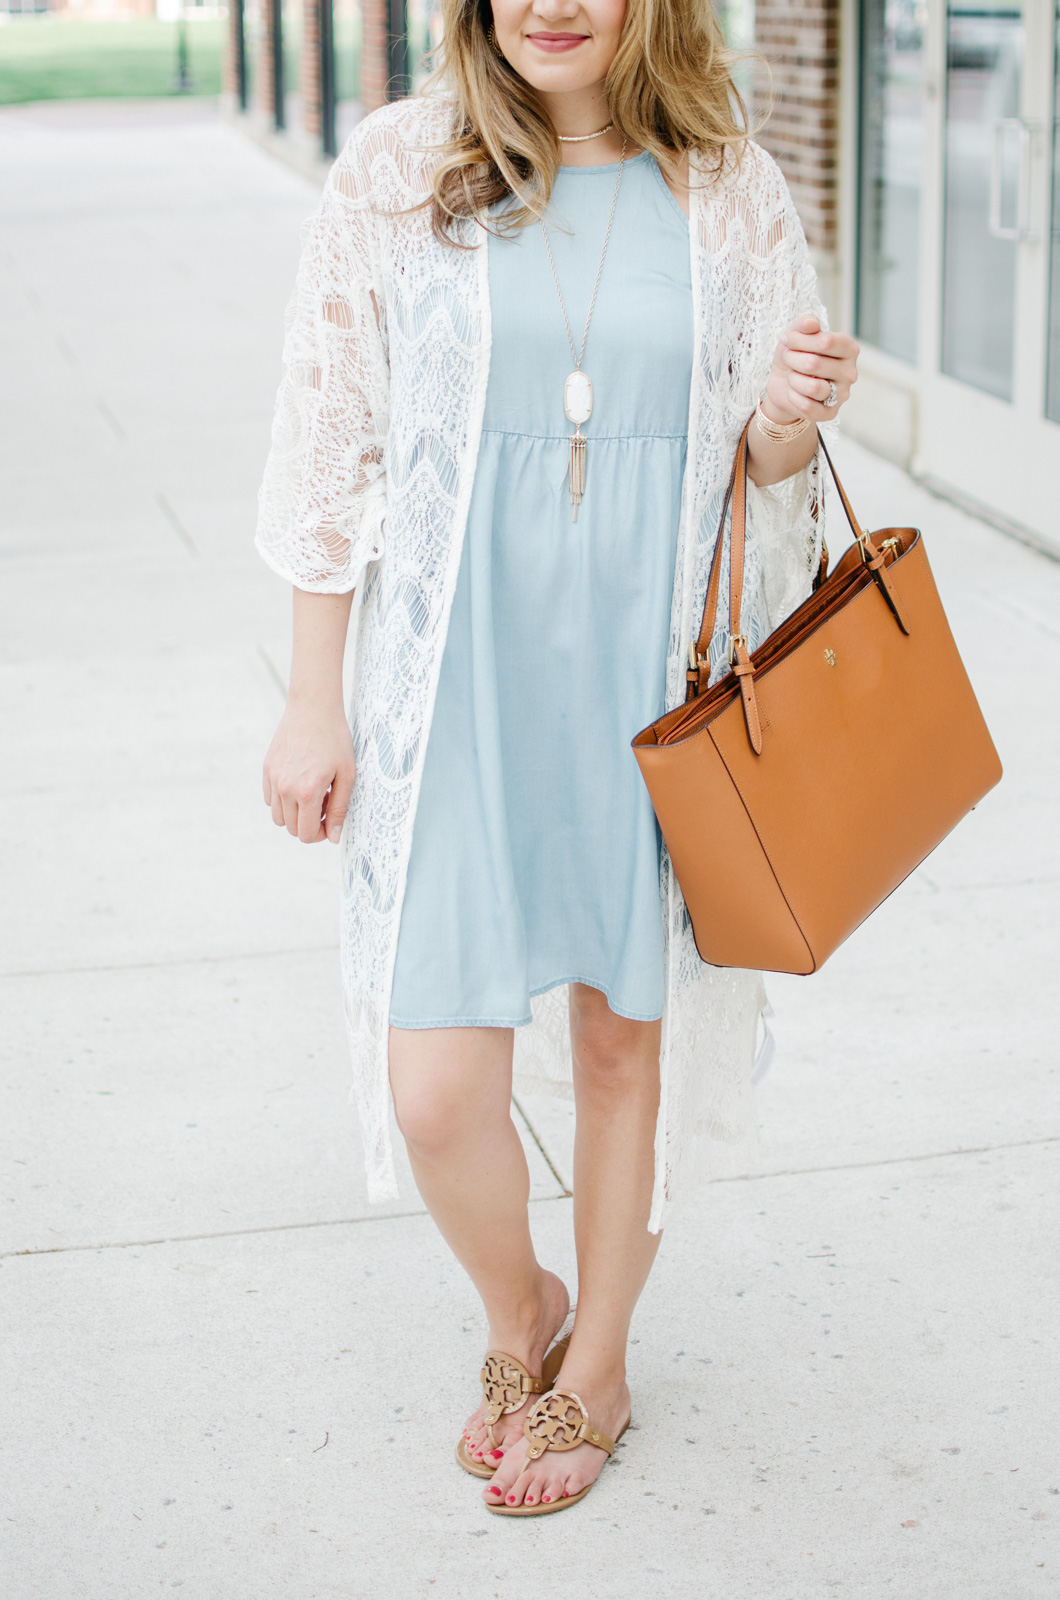 boho outfit summer - chambray dress with long lace kimono | For more cute Spring outfits, head to bylaurenm.com